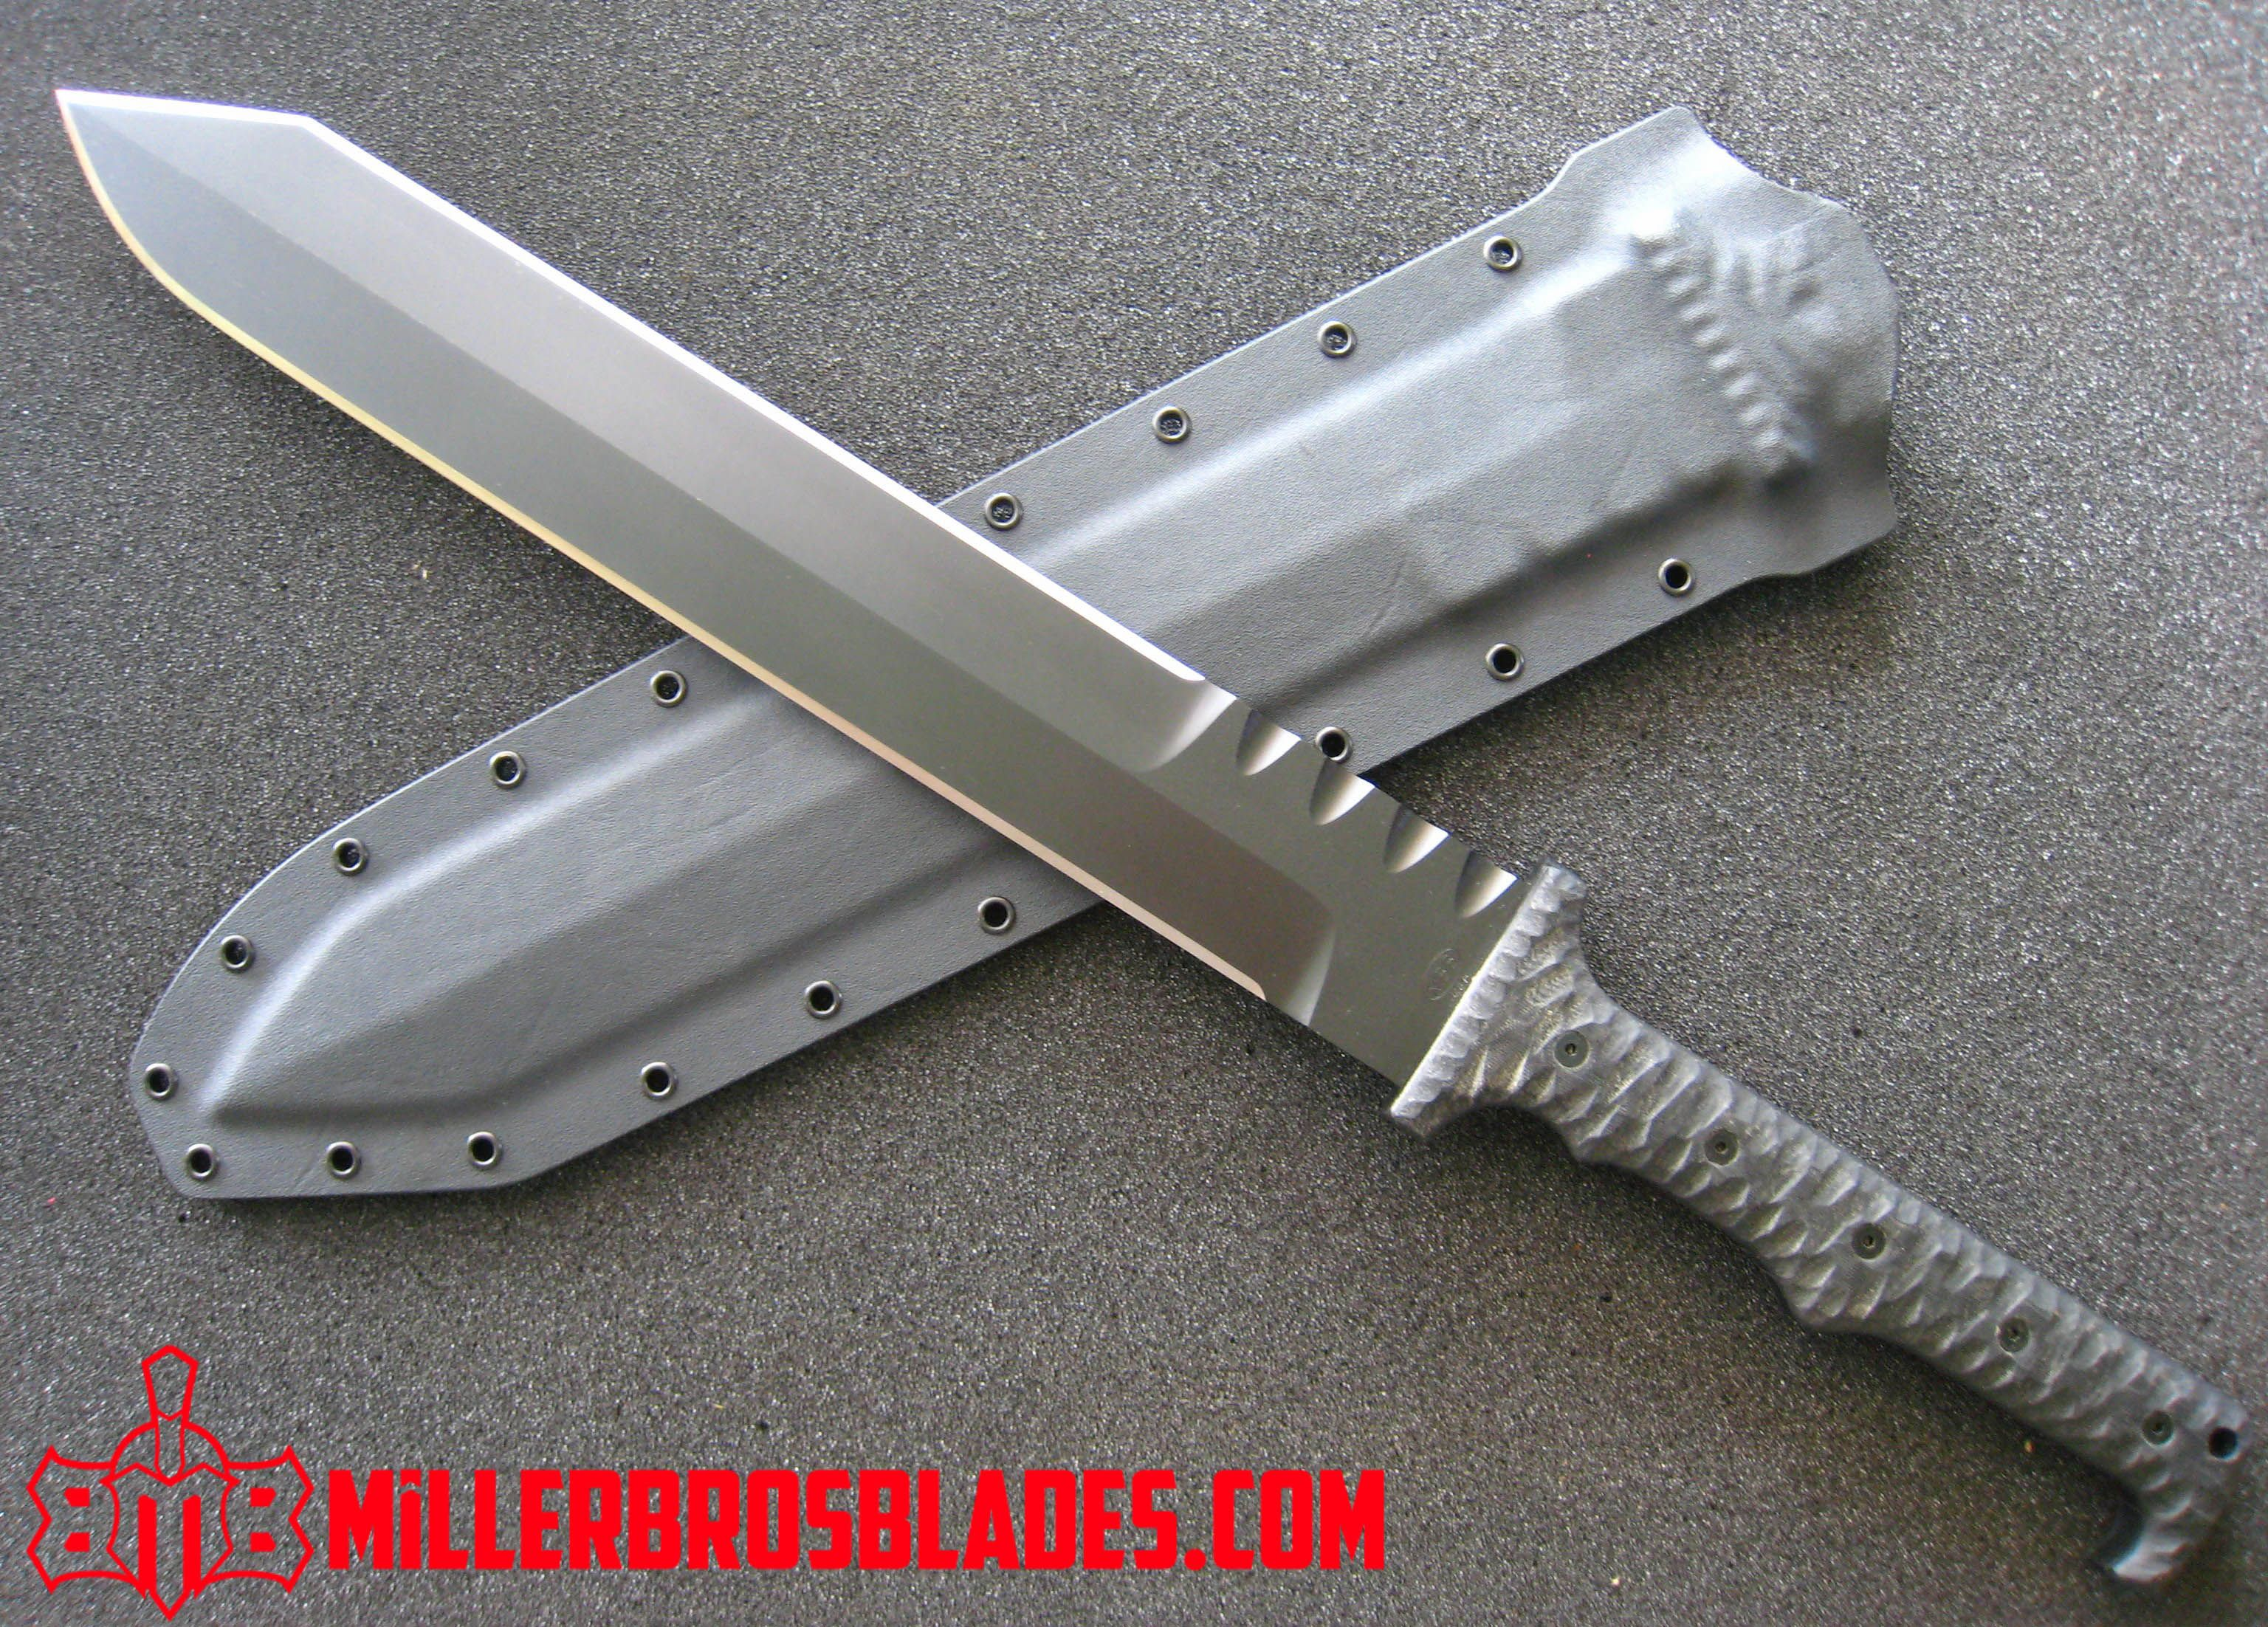 Miller Bros Blades M 2 Tactical Short Sword Modern Gladius This Model Is Available In Z Wear Pm Cpm 3v Cpm S35vn Z Tu Knife Custom Knives Tactical Swords